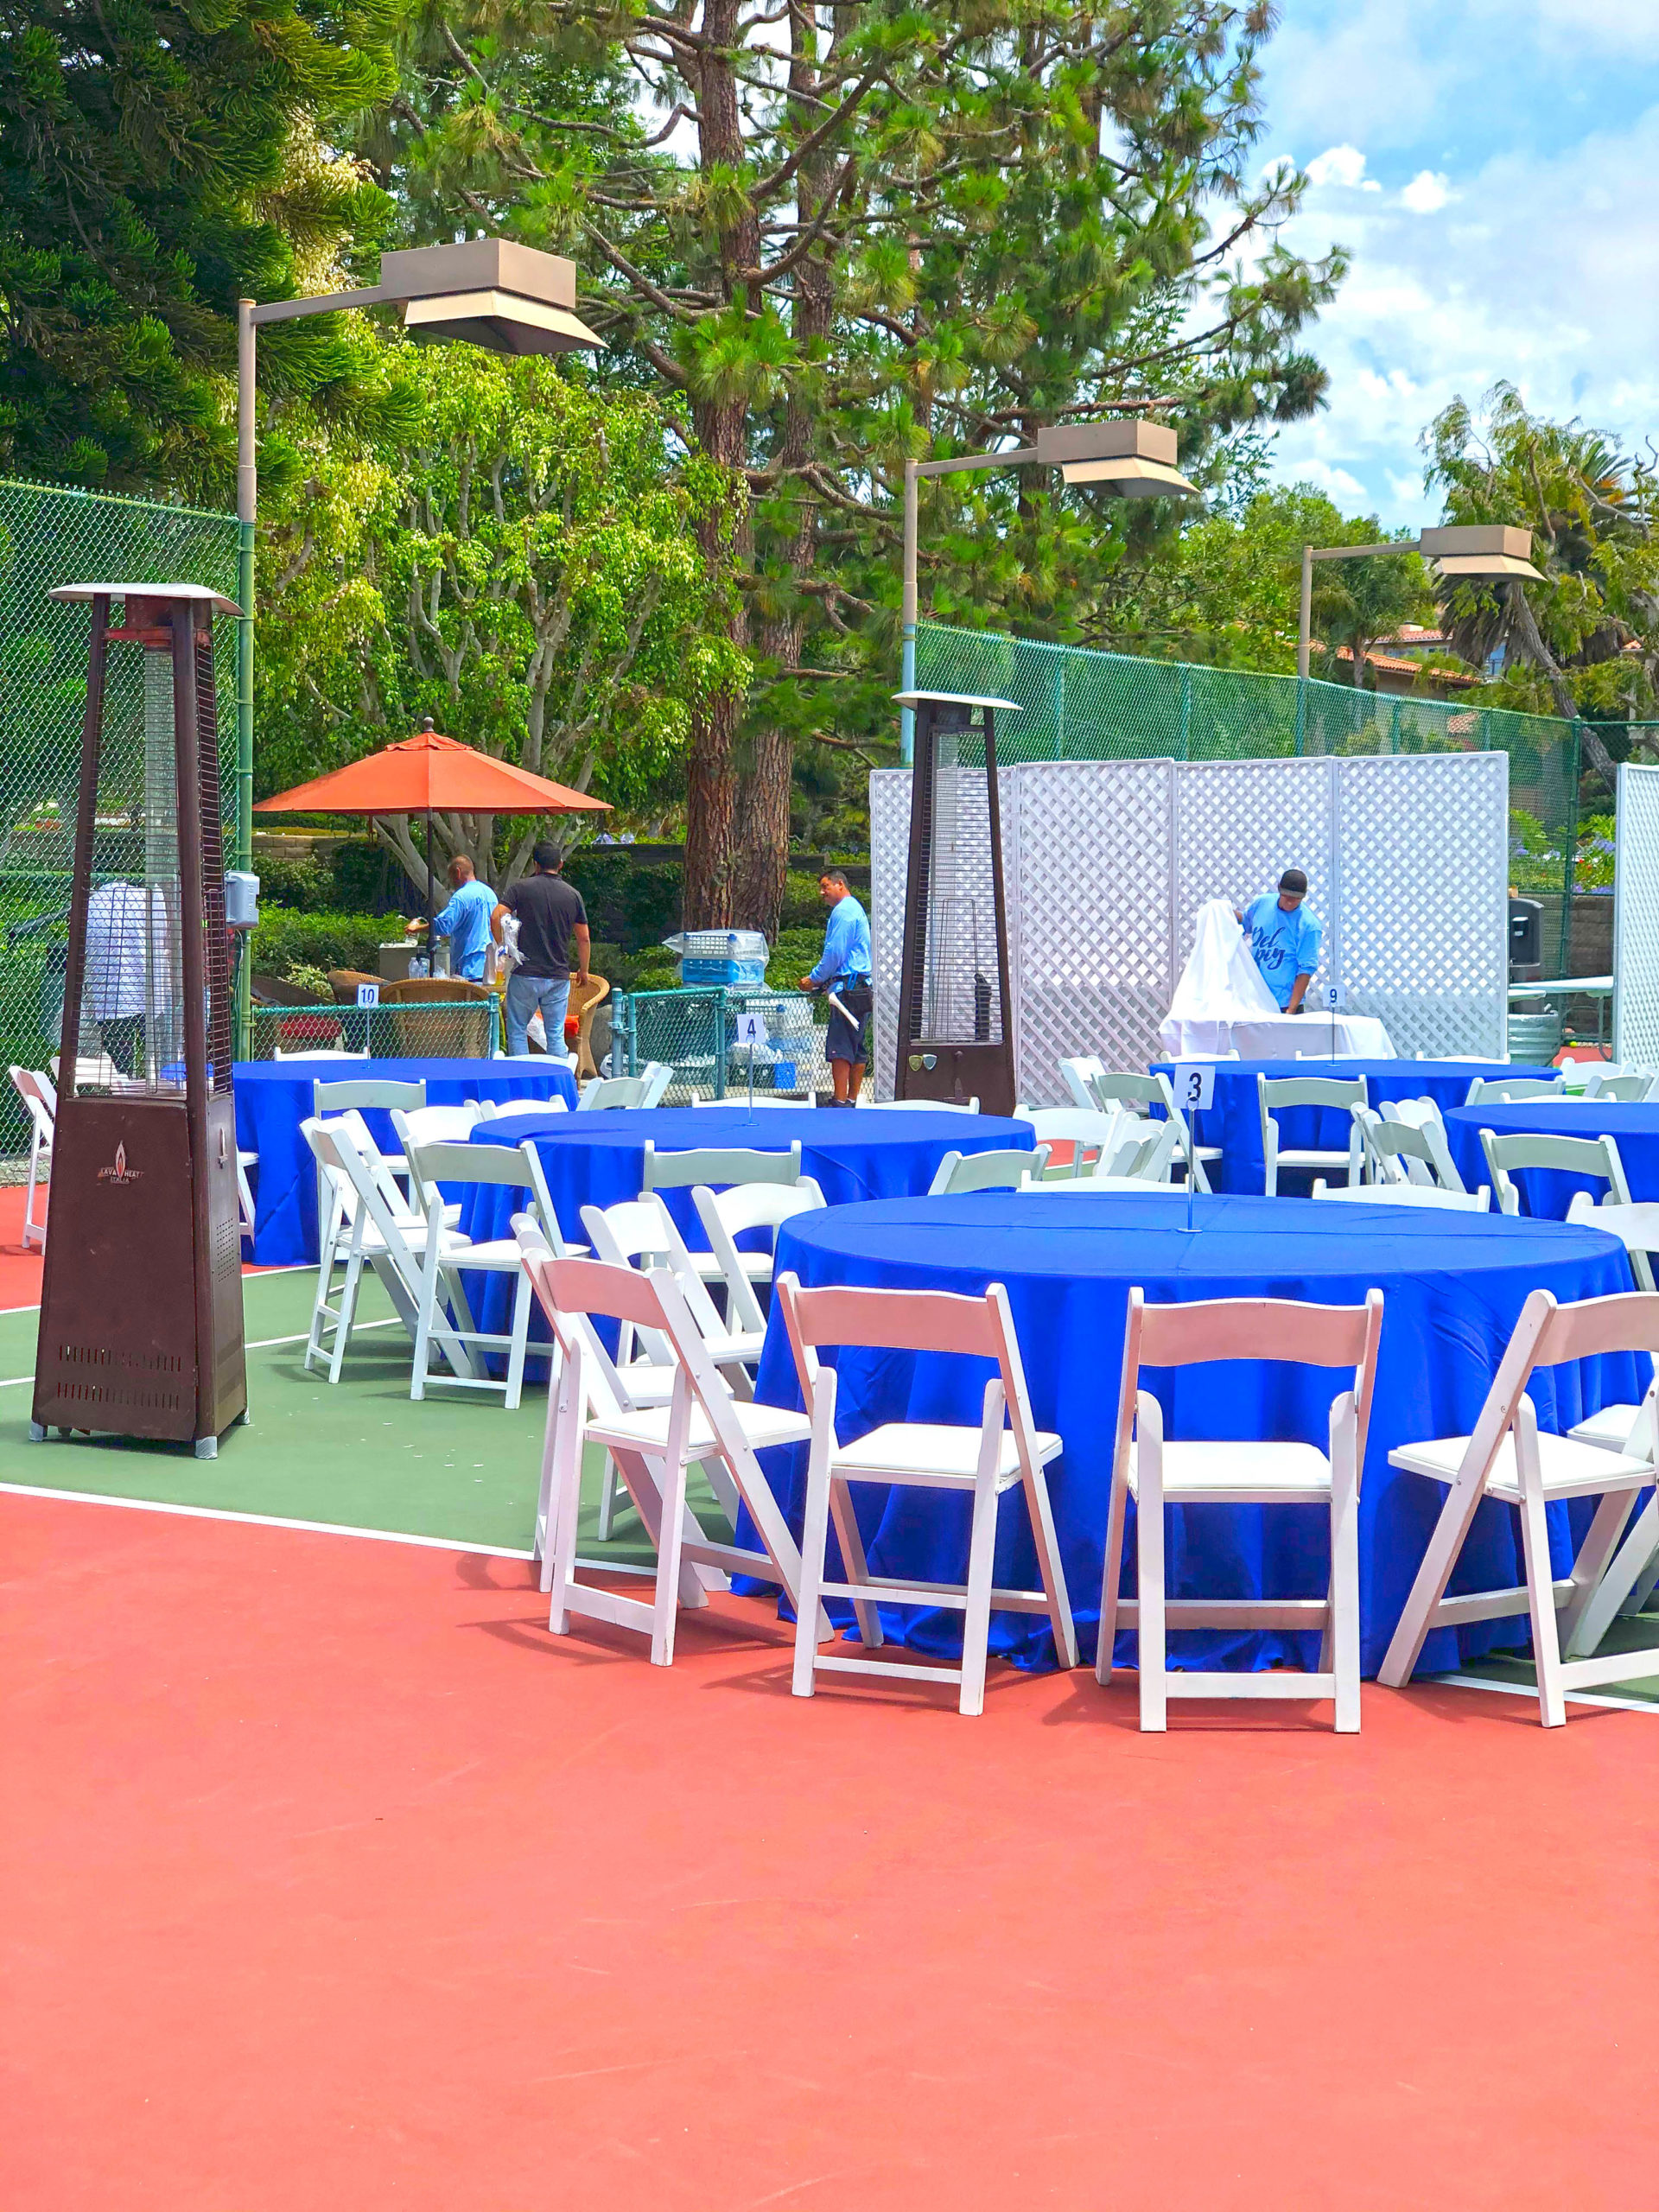 Dinner Party on tennis court!